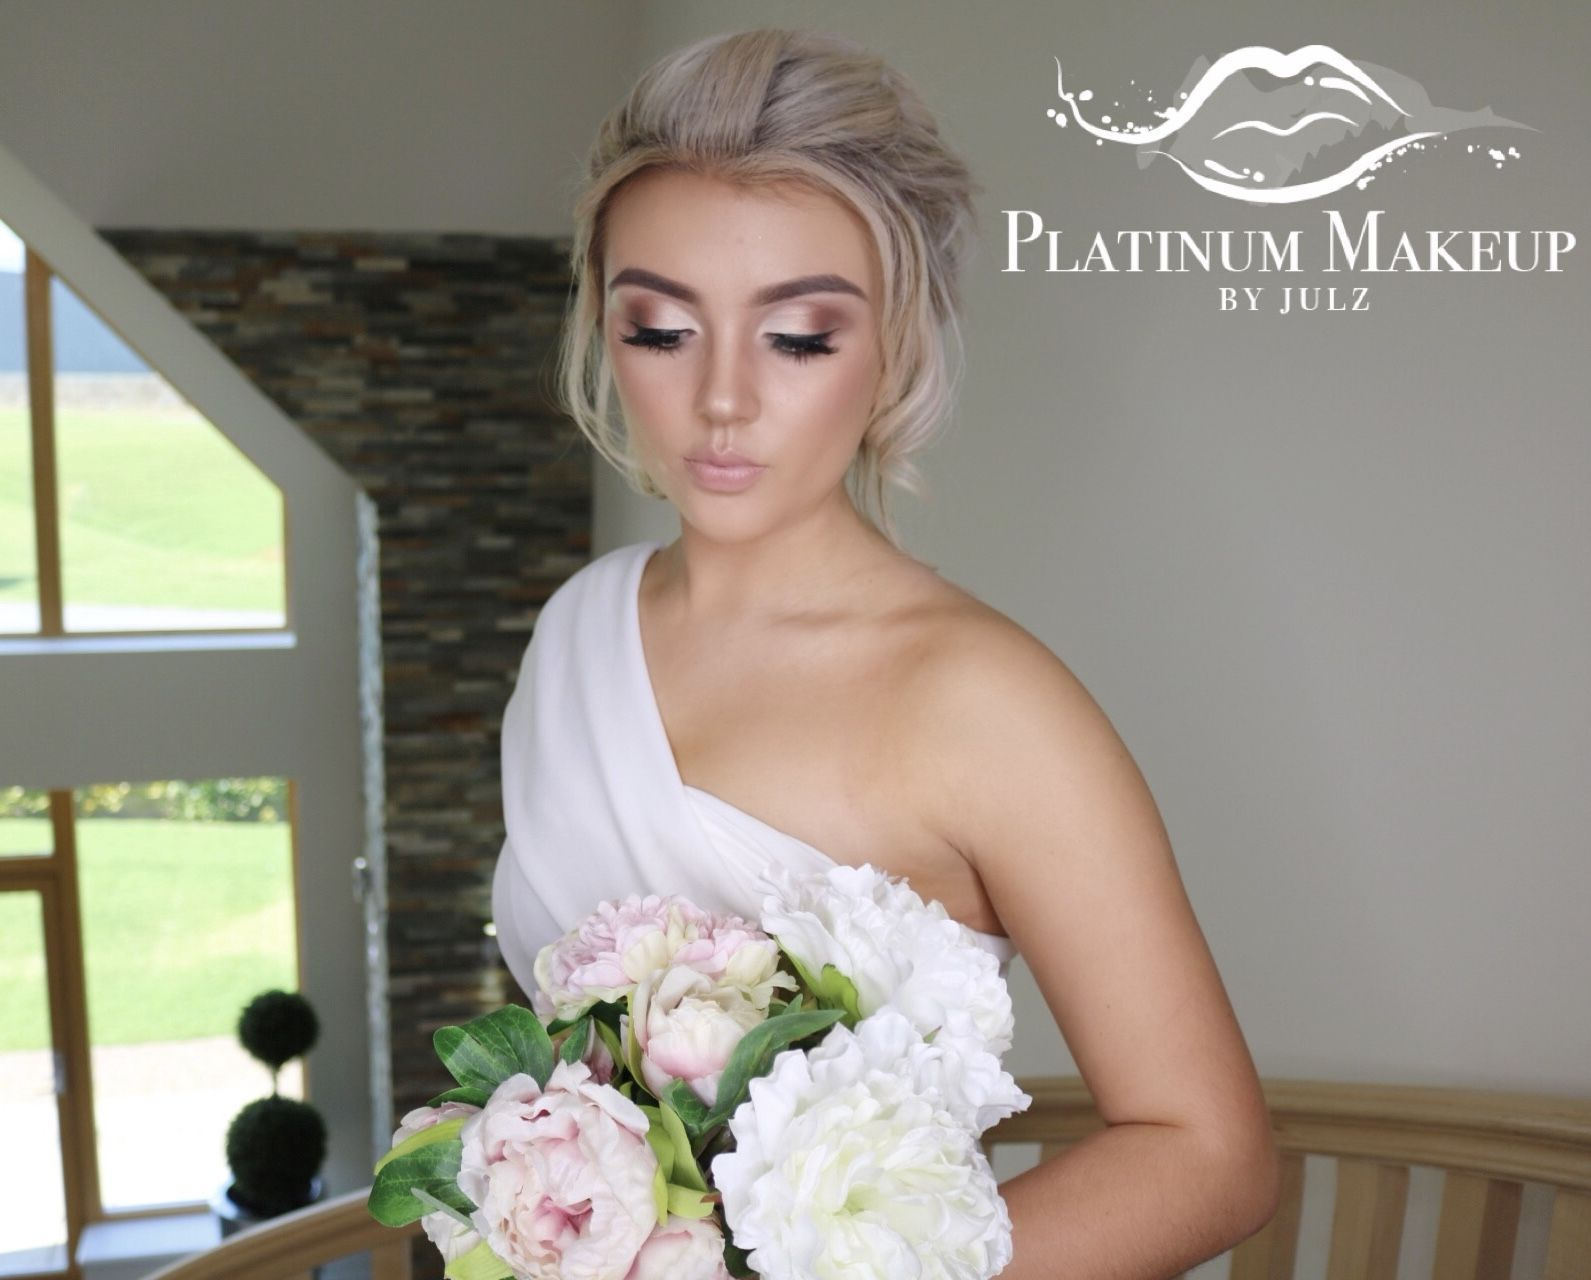 Hair by gemma taylor aberdeenshire bridal makeup look soft glam